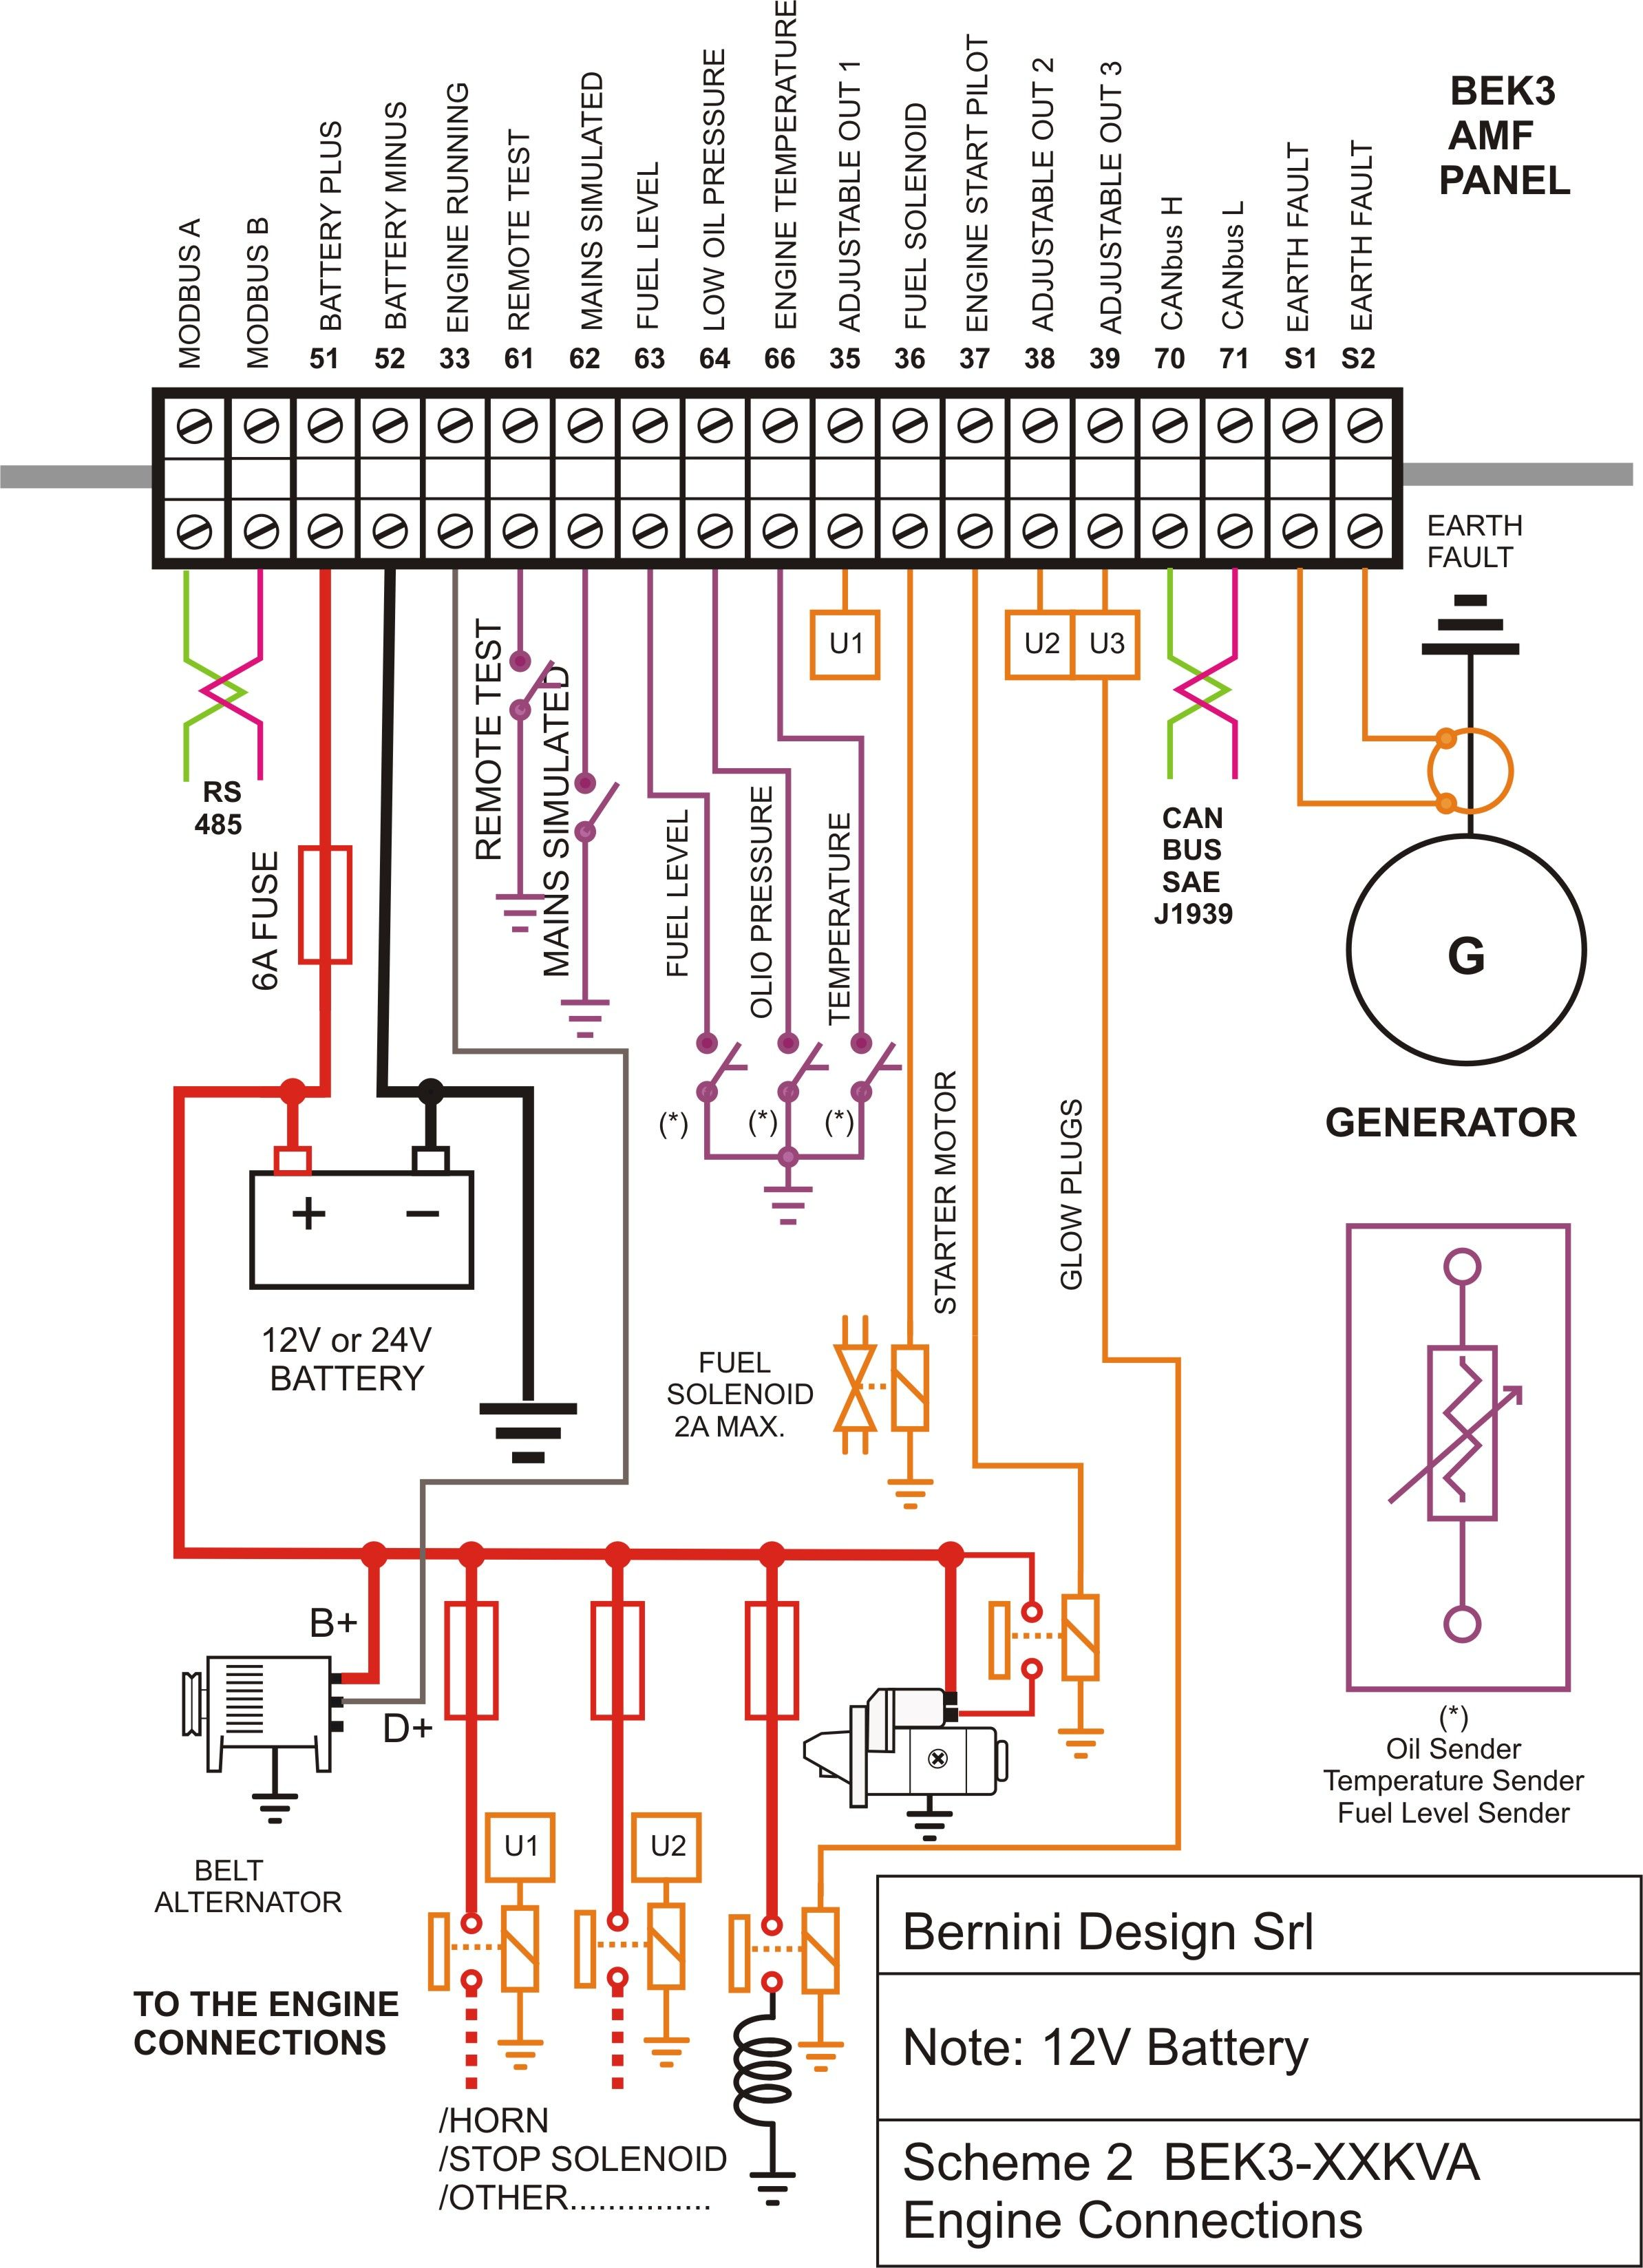 Wiring Diagram Genset - Wiring Diagram Bookmark on